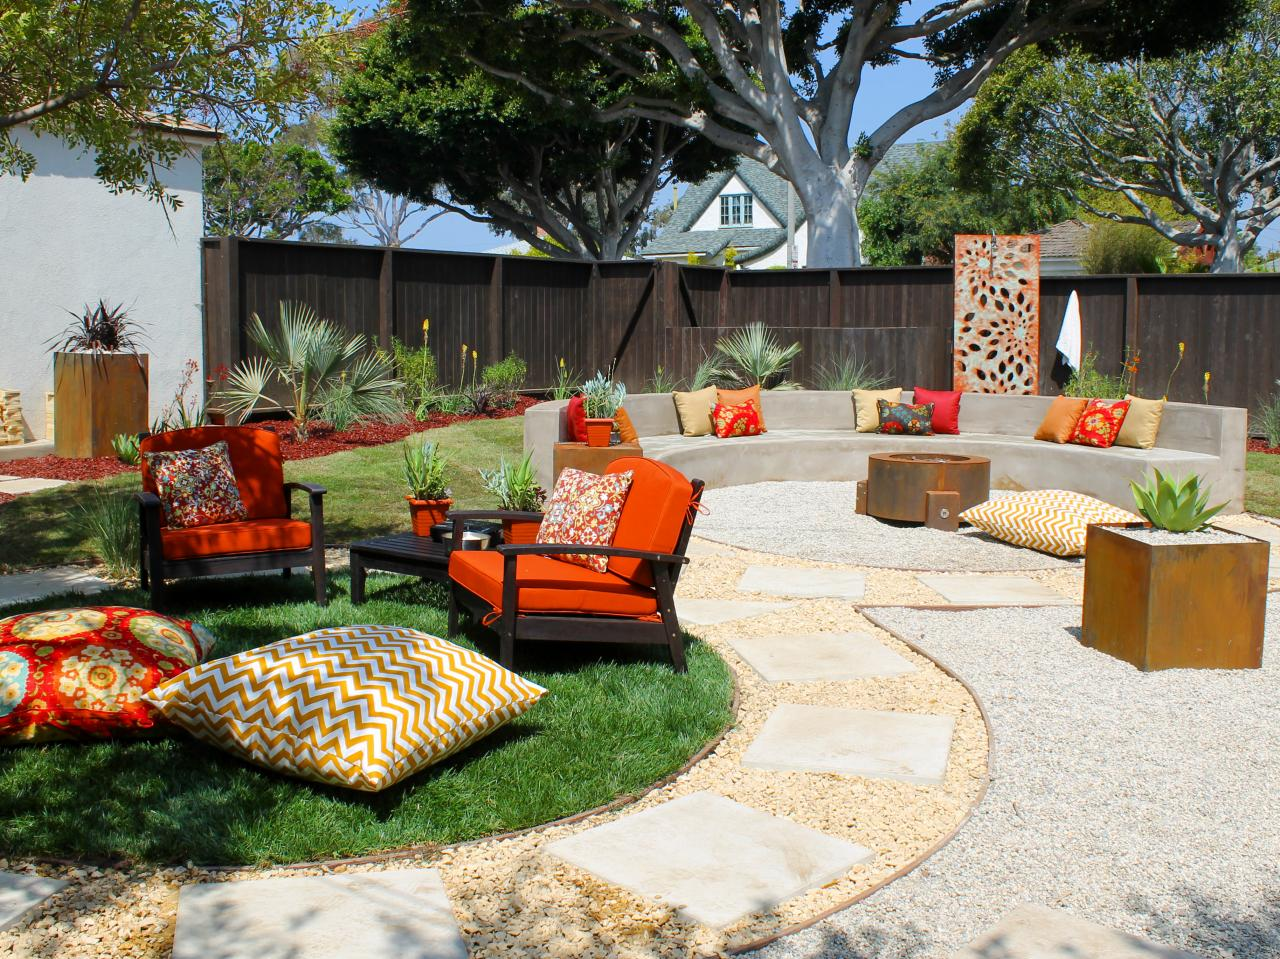 DIY backyard fire pit: Home-made Ideas to Build Outdoor ...